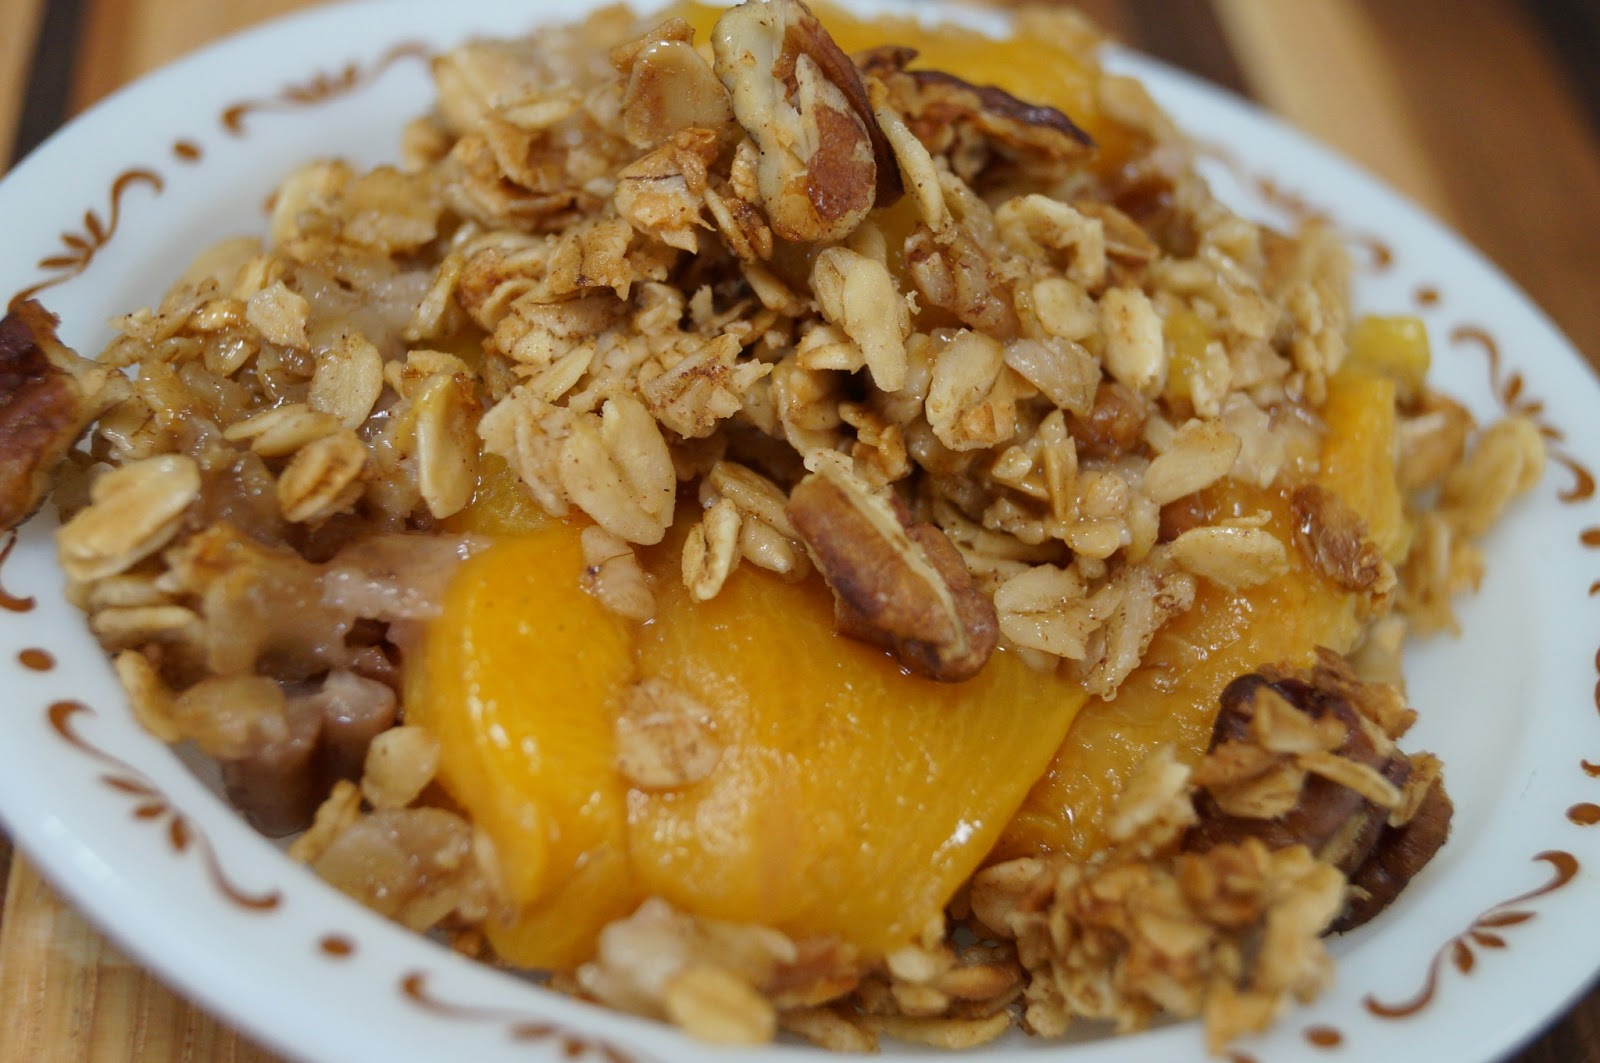 free peach crisp 2 quarts canned peaches or 2 large cans peaches ...